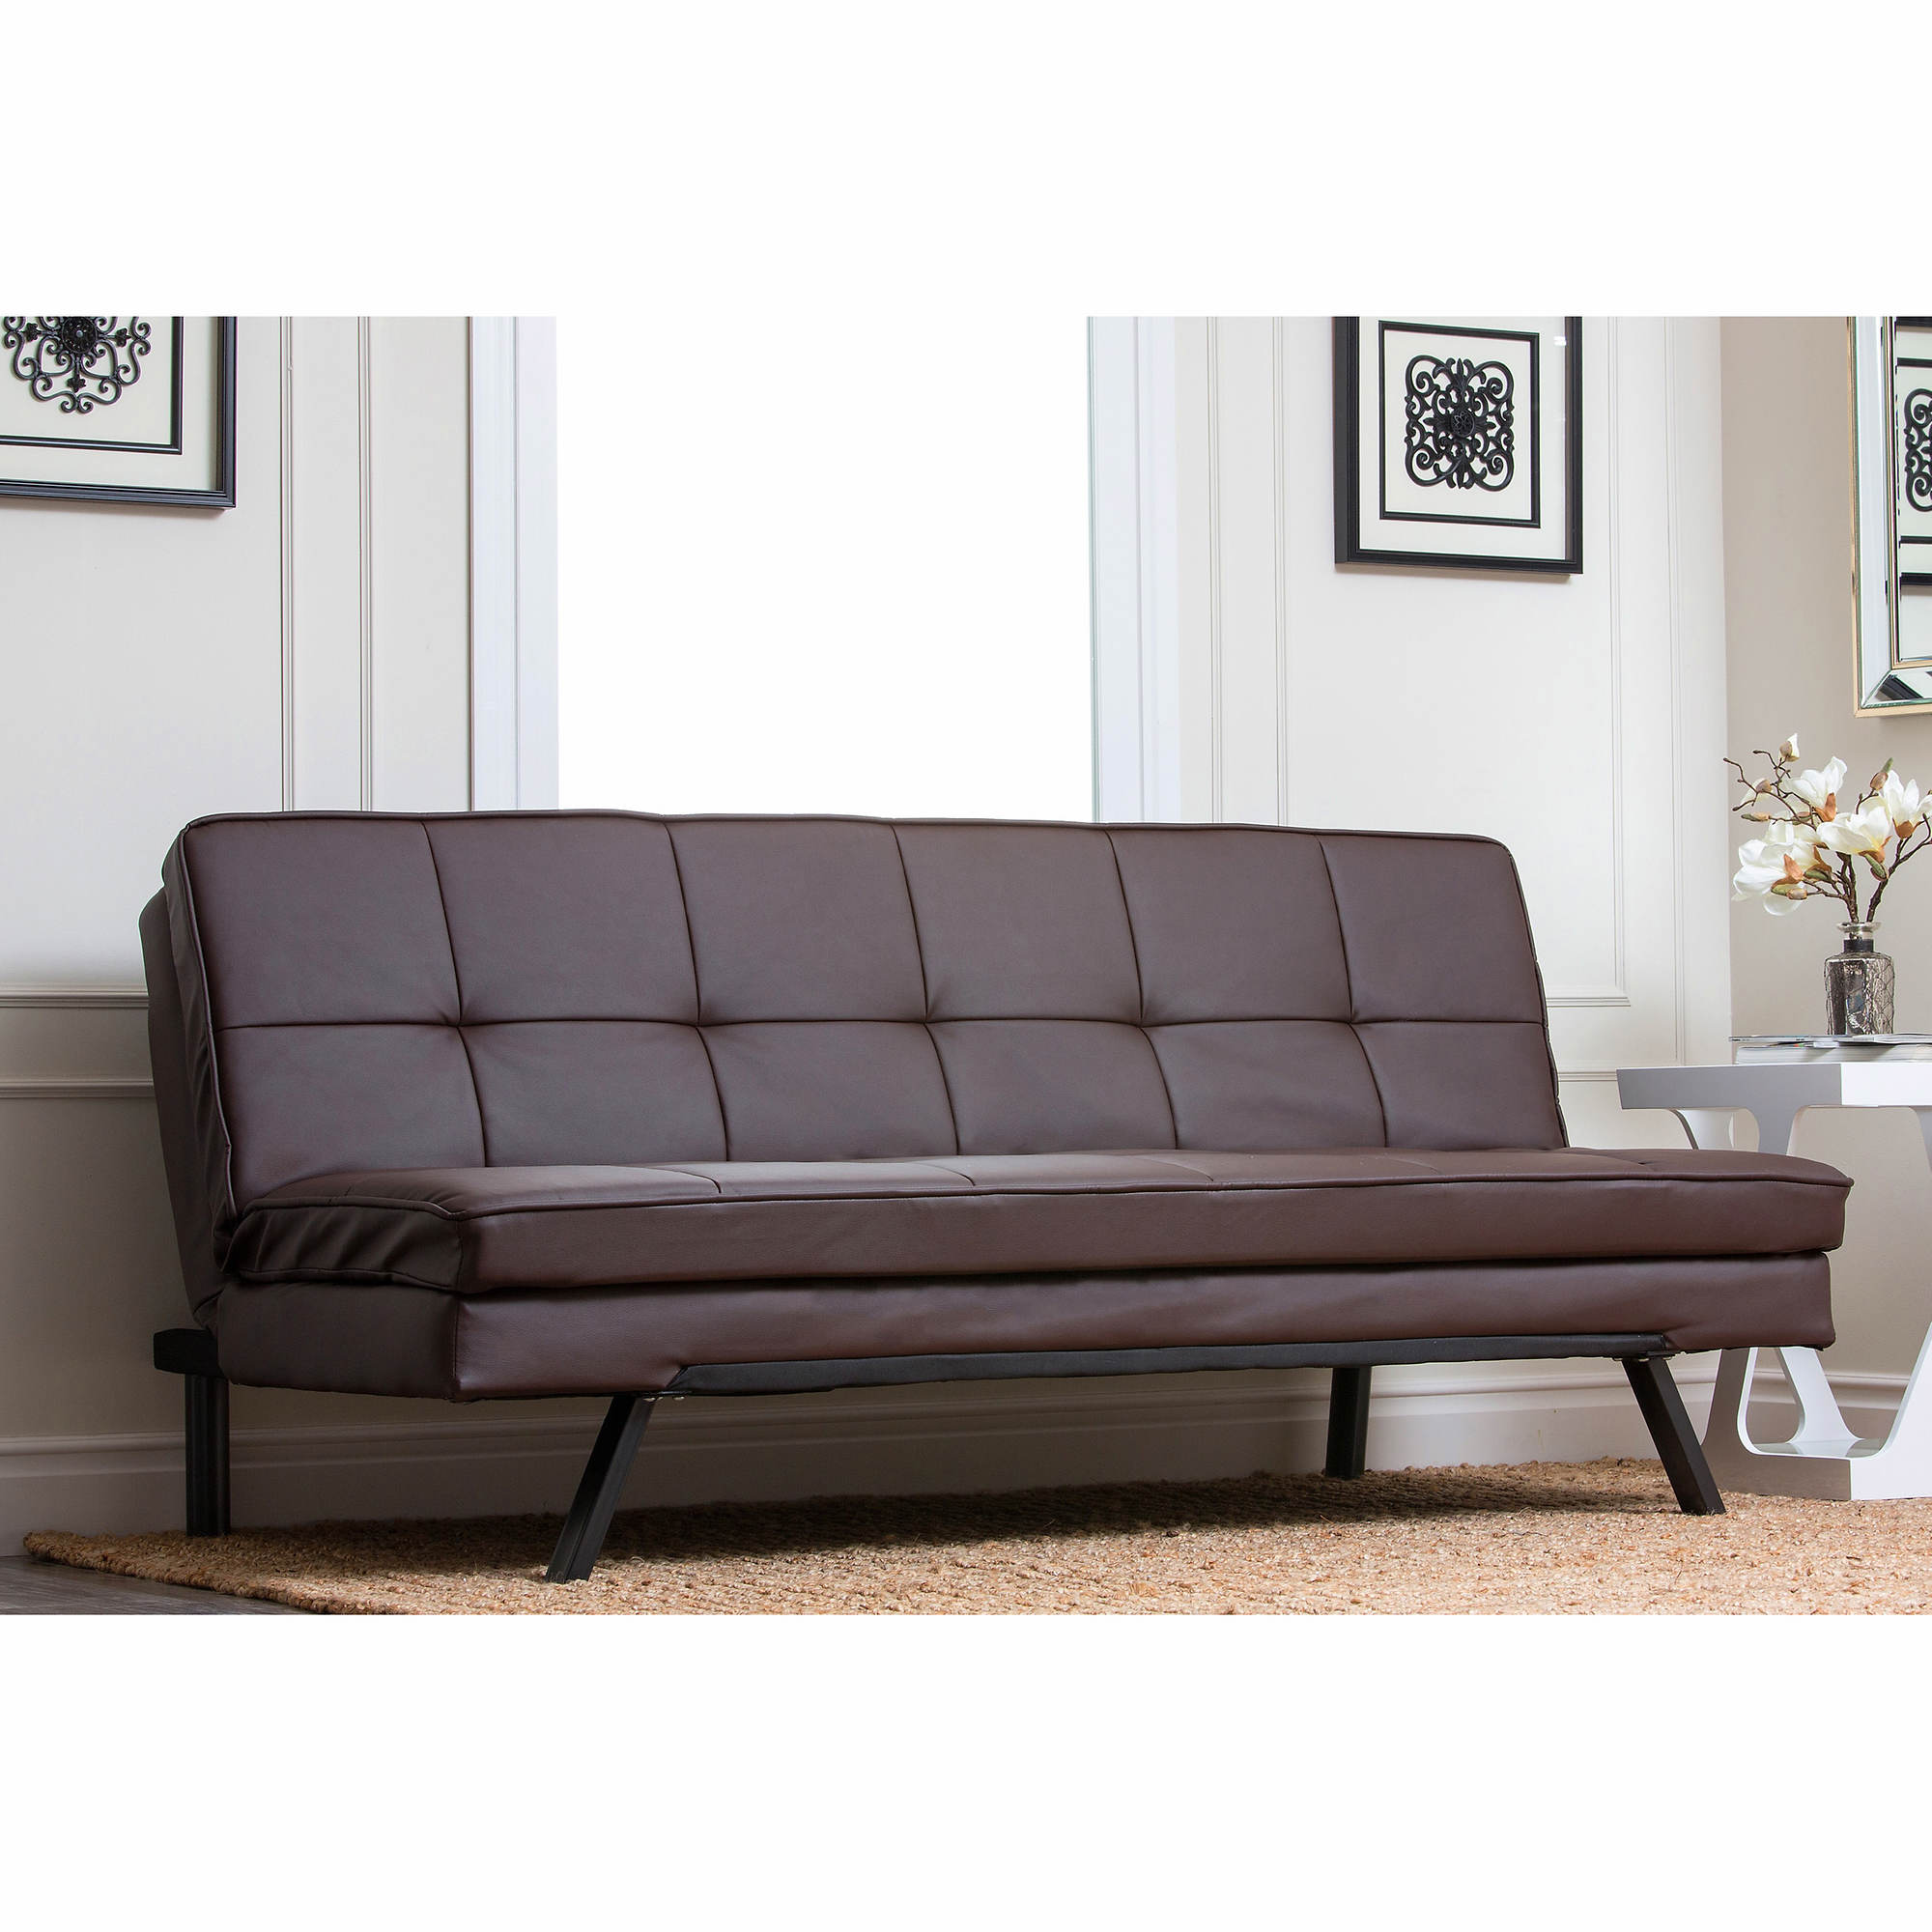 sinuous hardwood or frame offers that wi metal upholstered spring velvet in comfortable constructed space plush and madison blue sleeping royal pin with a seating base futons